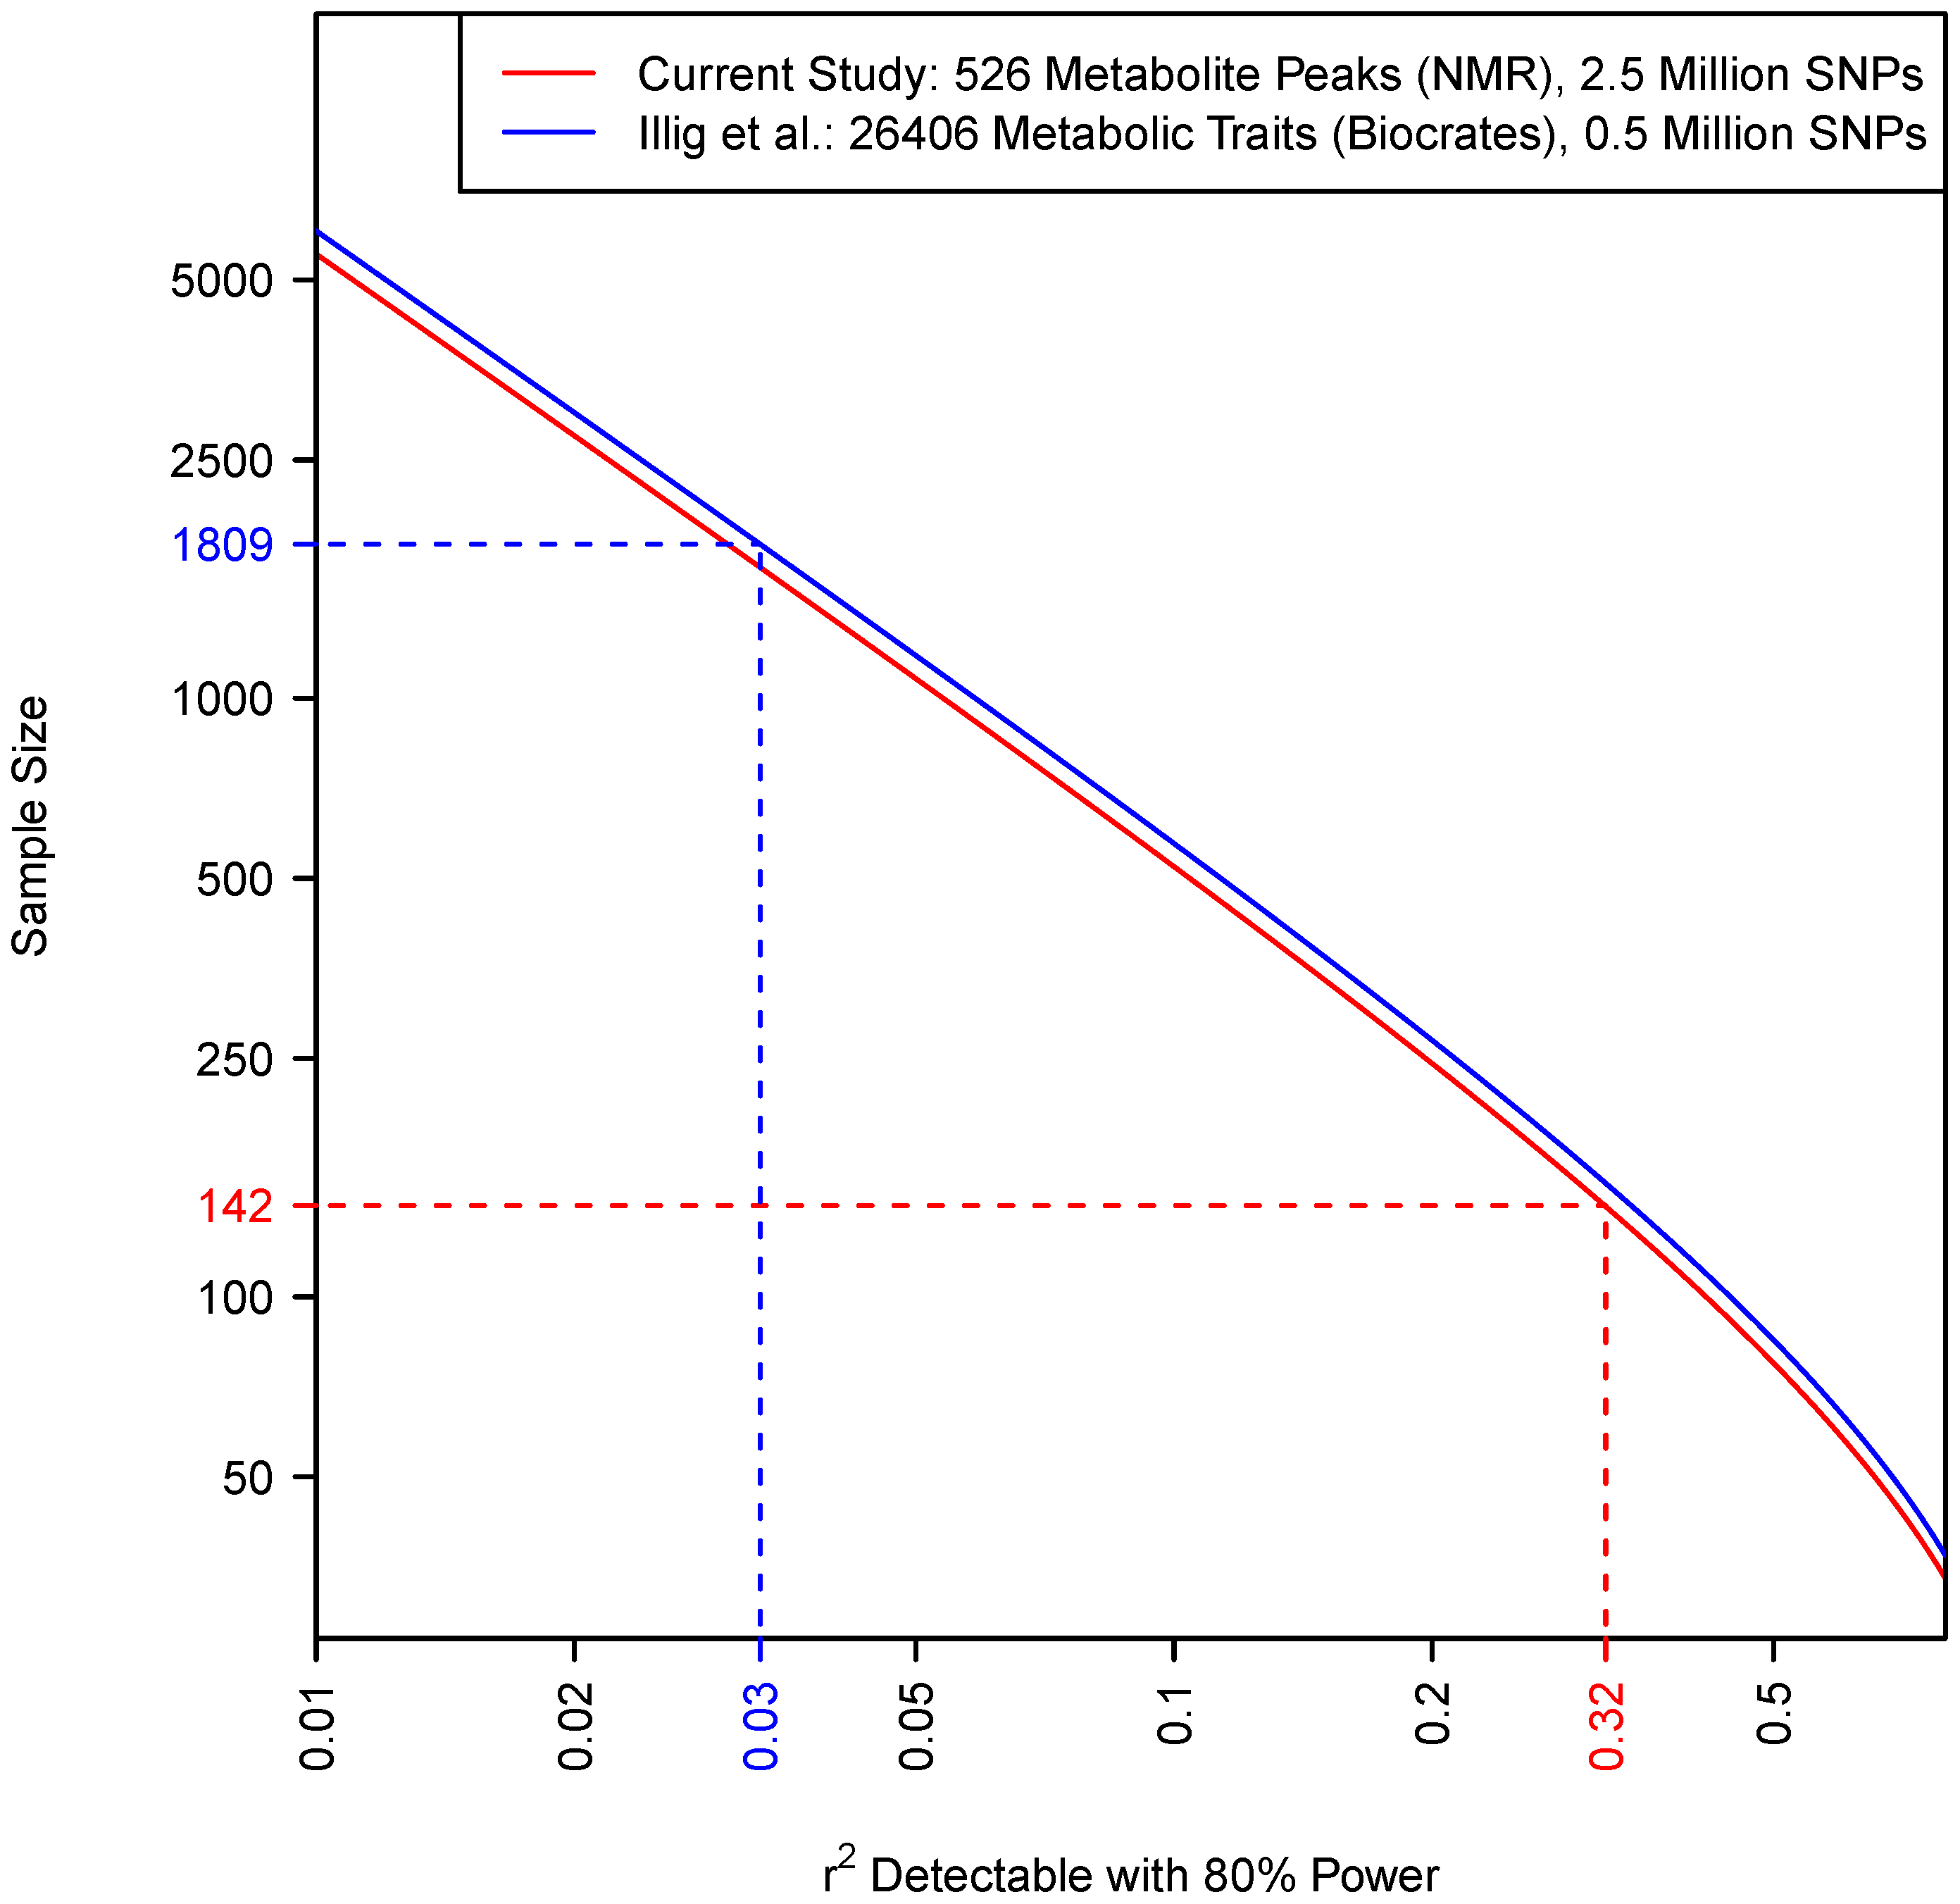 Relationship between sample size and the size of effect detectable with 80% power in each study (shown by solid lines).